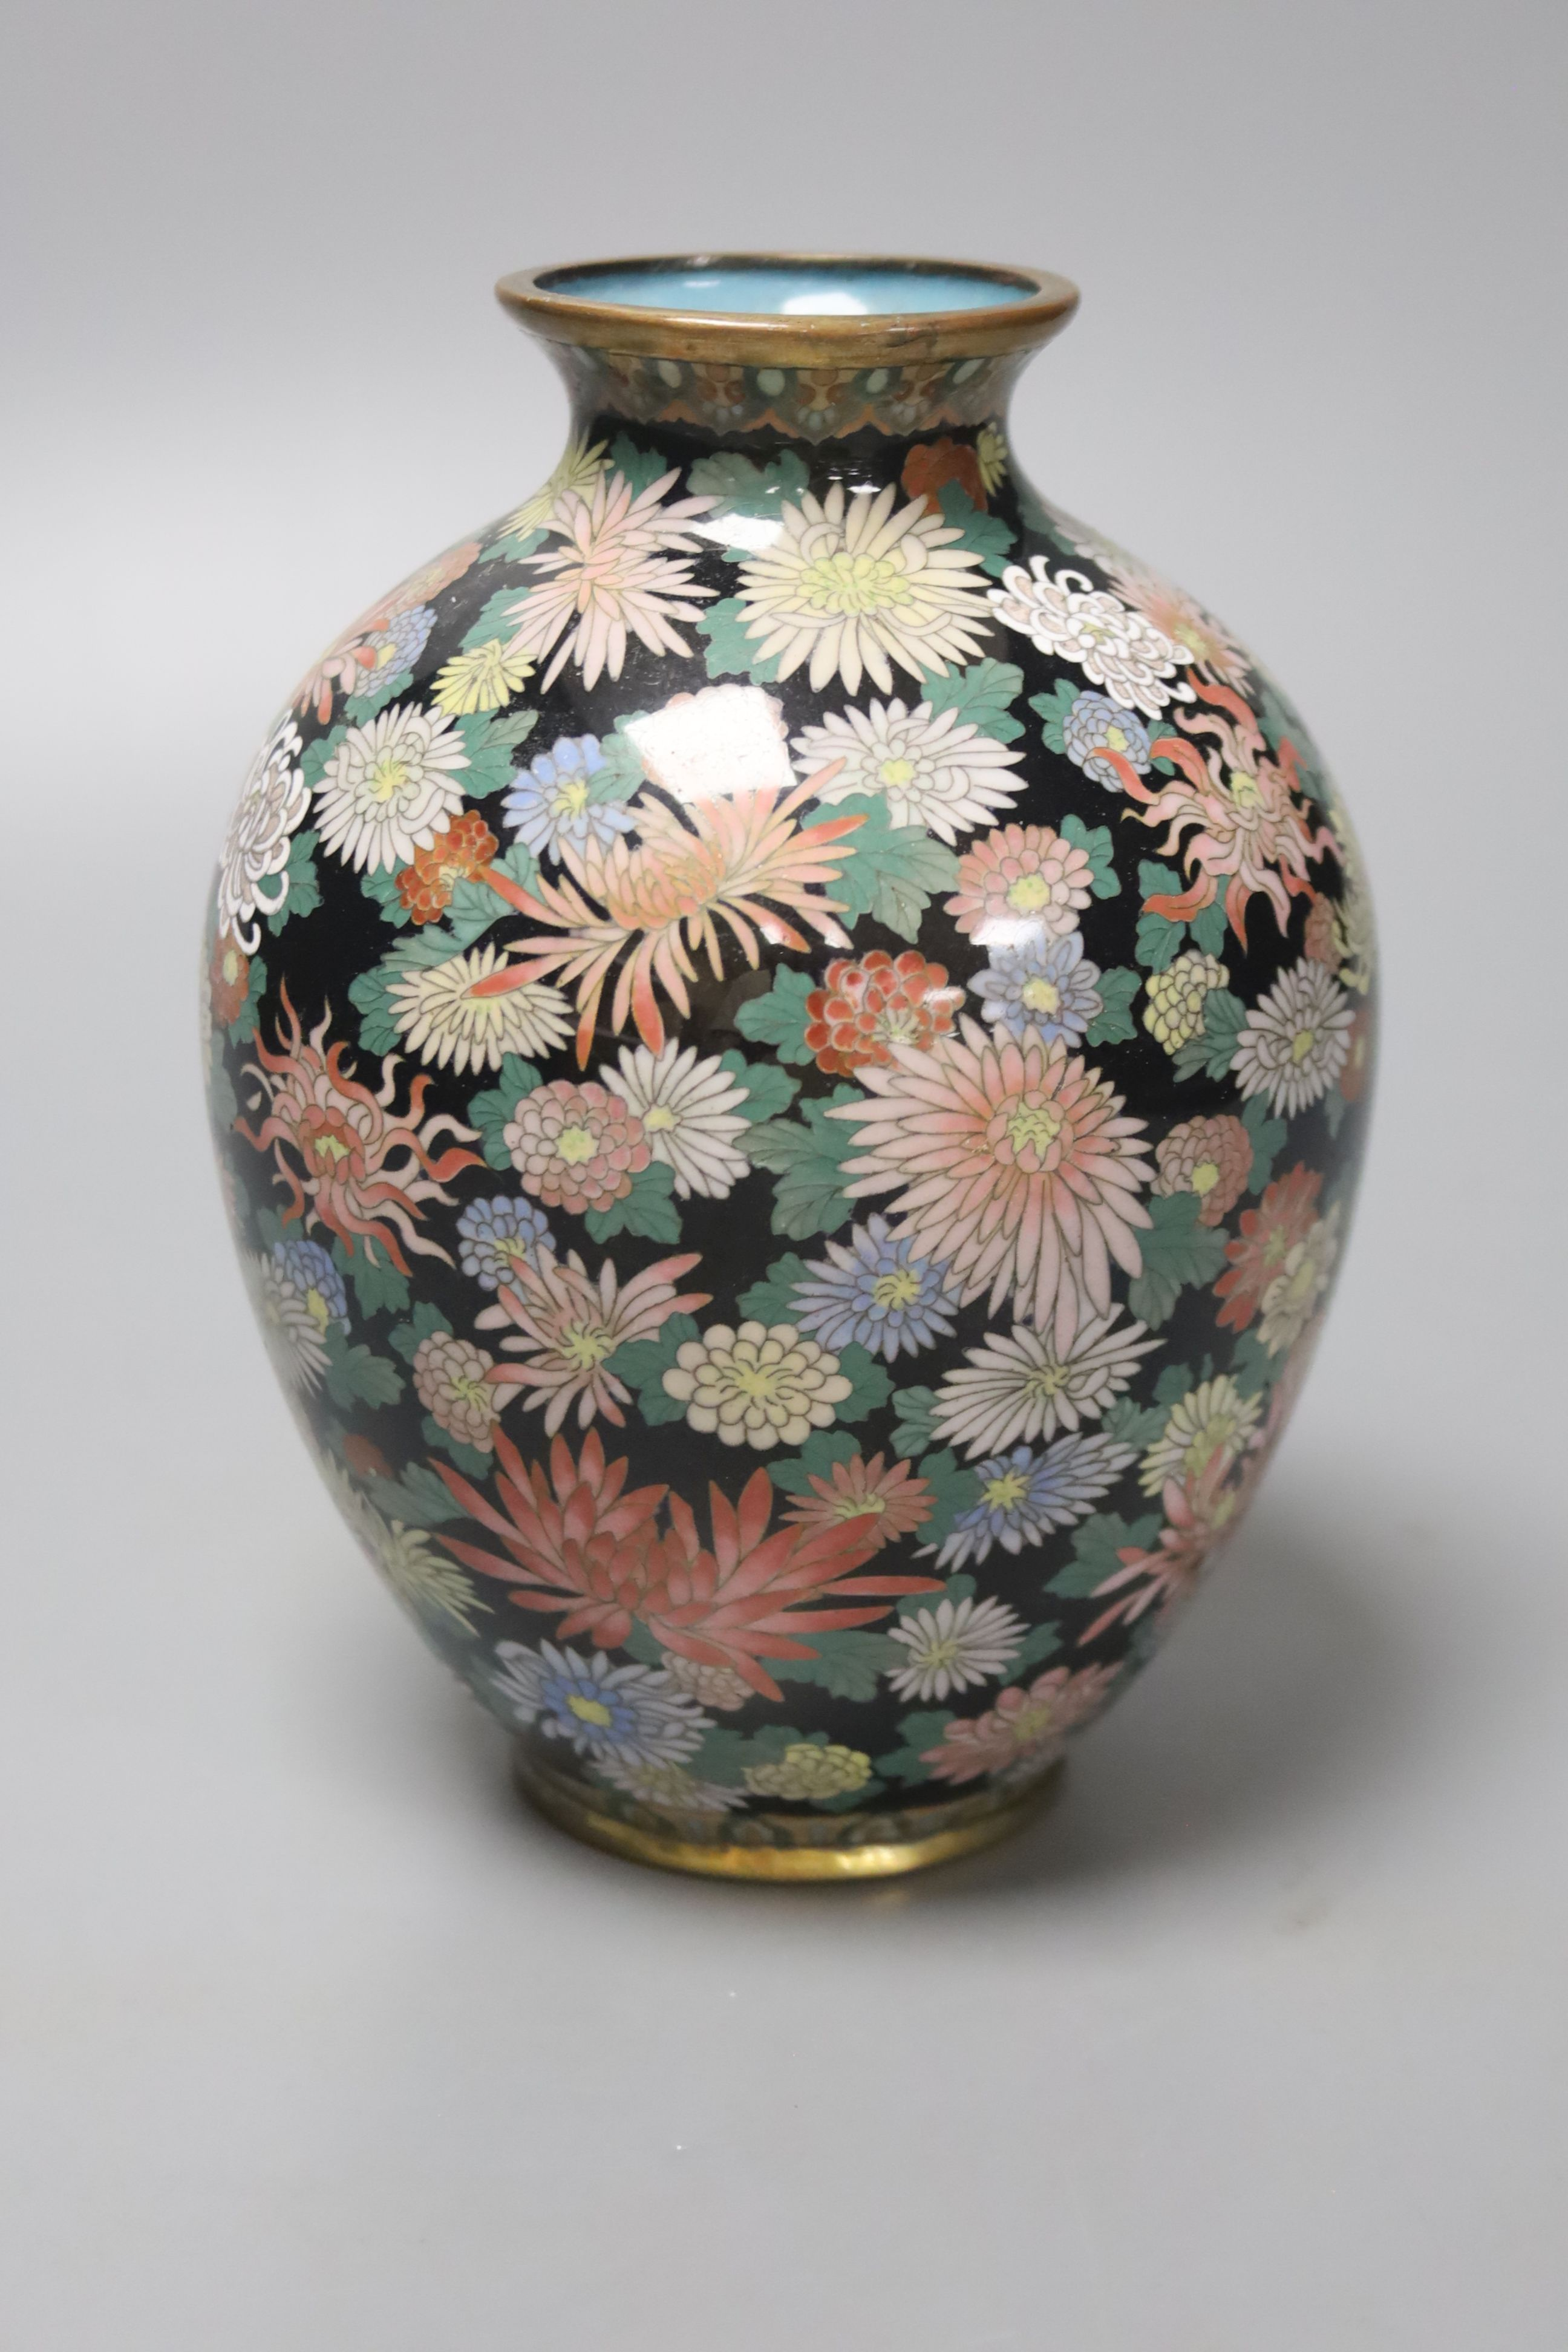 A Japanese silver wire cloisonne vase, decorated with flower heads, possibly Inaba, 16cm high - Image 2 of 4